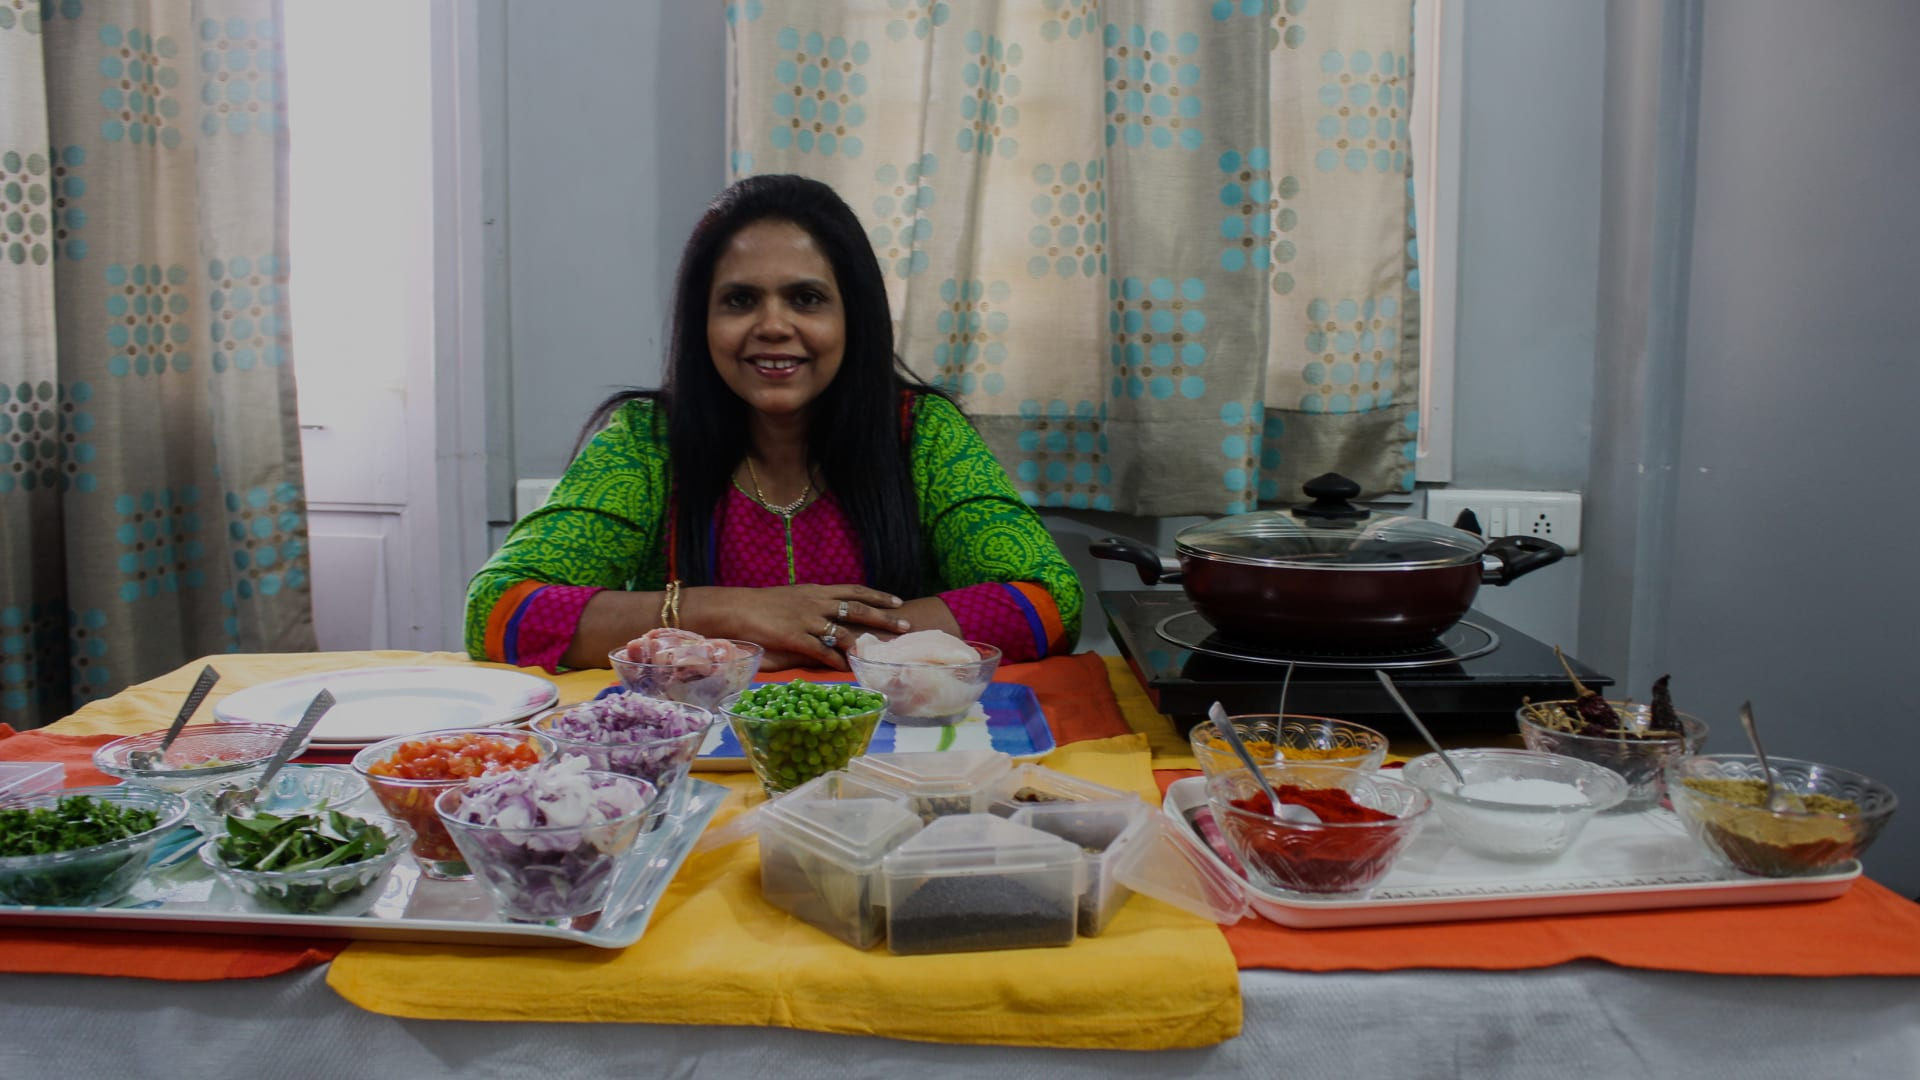 Hands On Curry - Authentic Cooking Class! - Mumbai - Withlocals